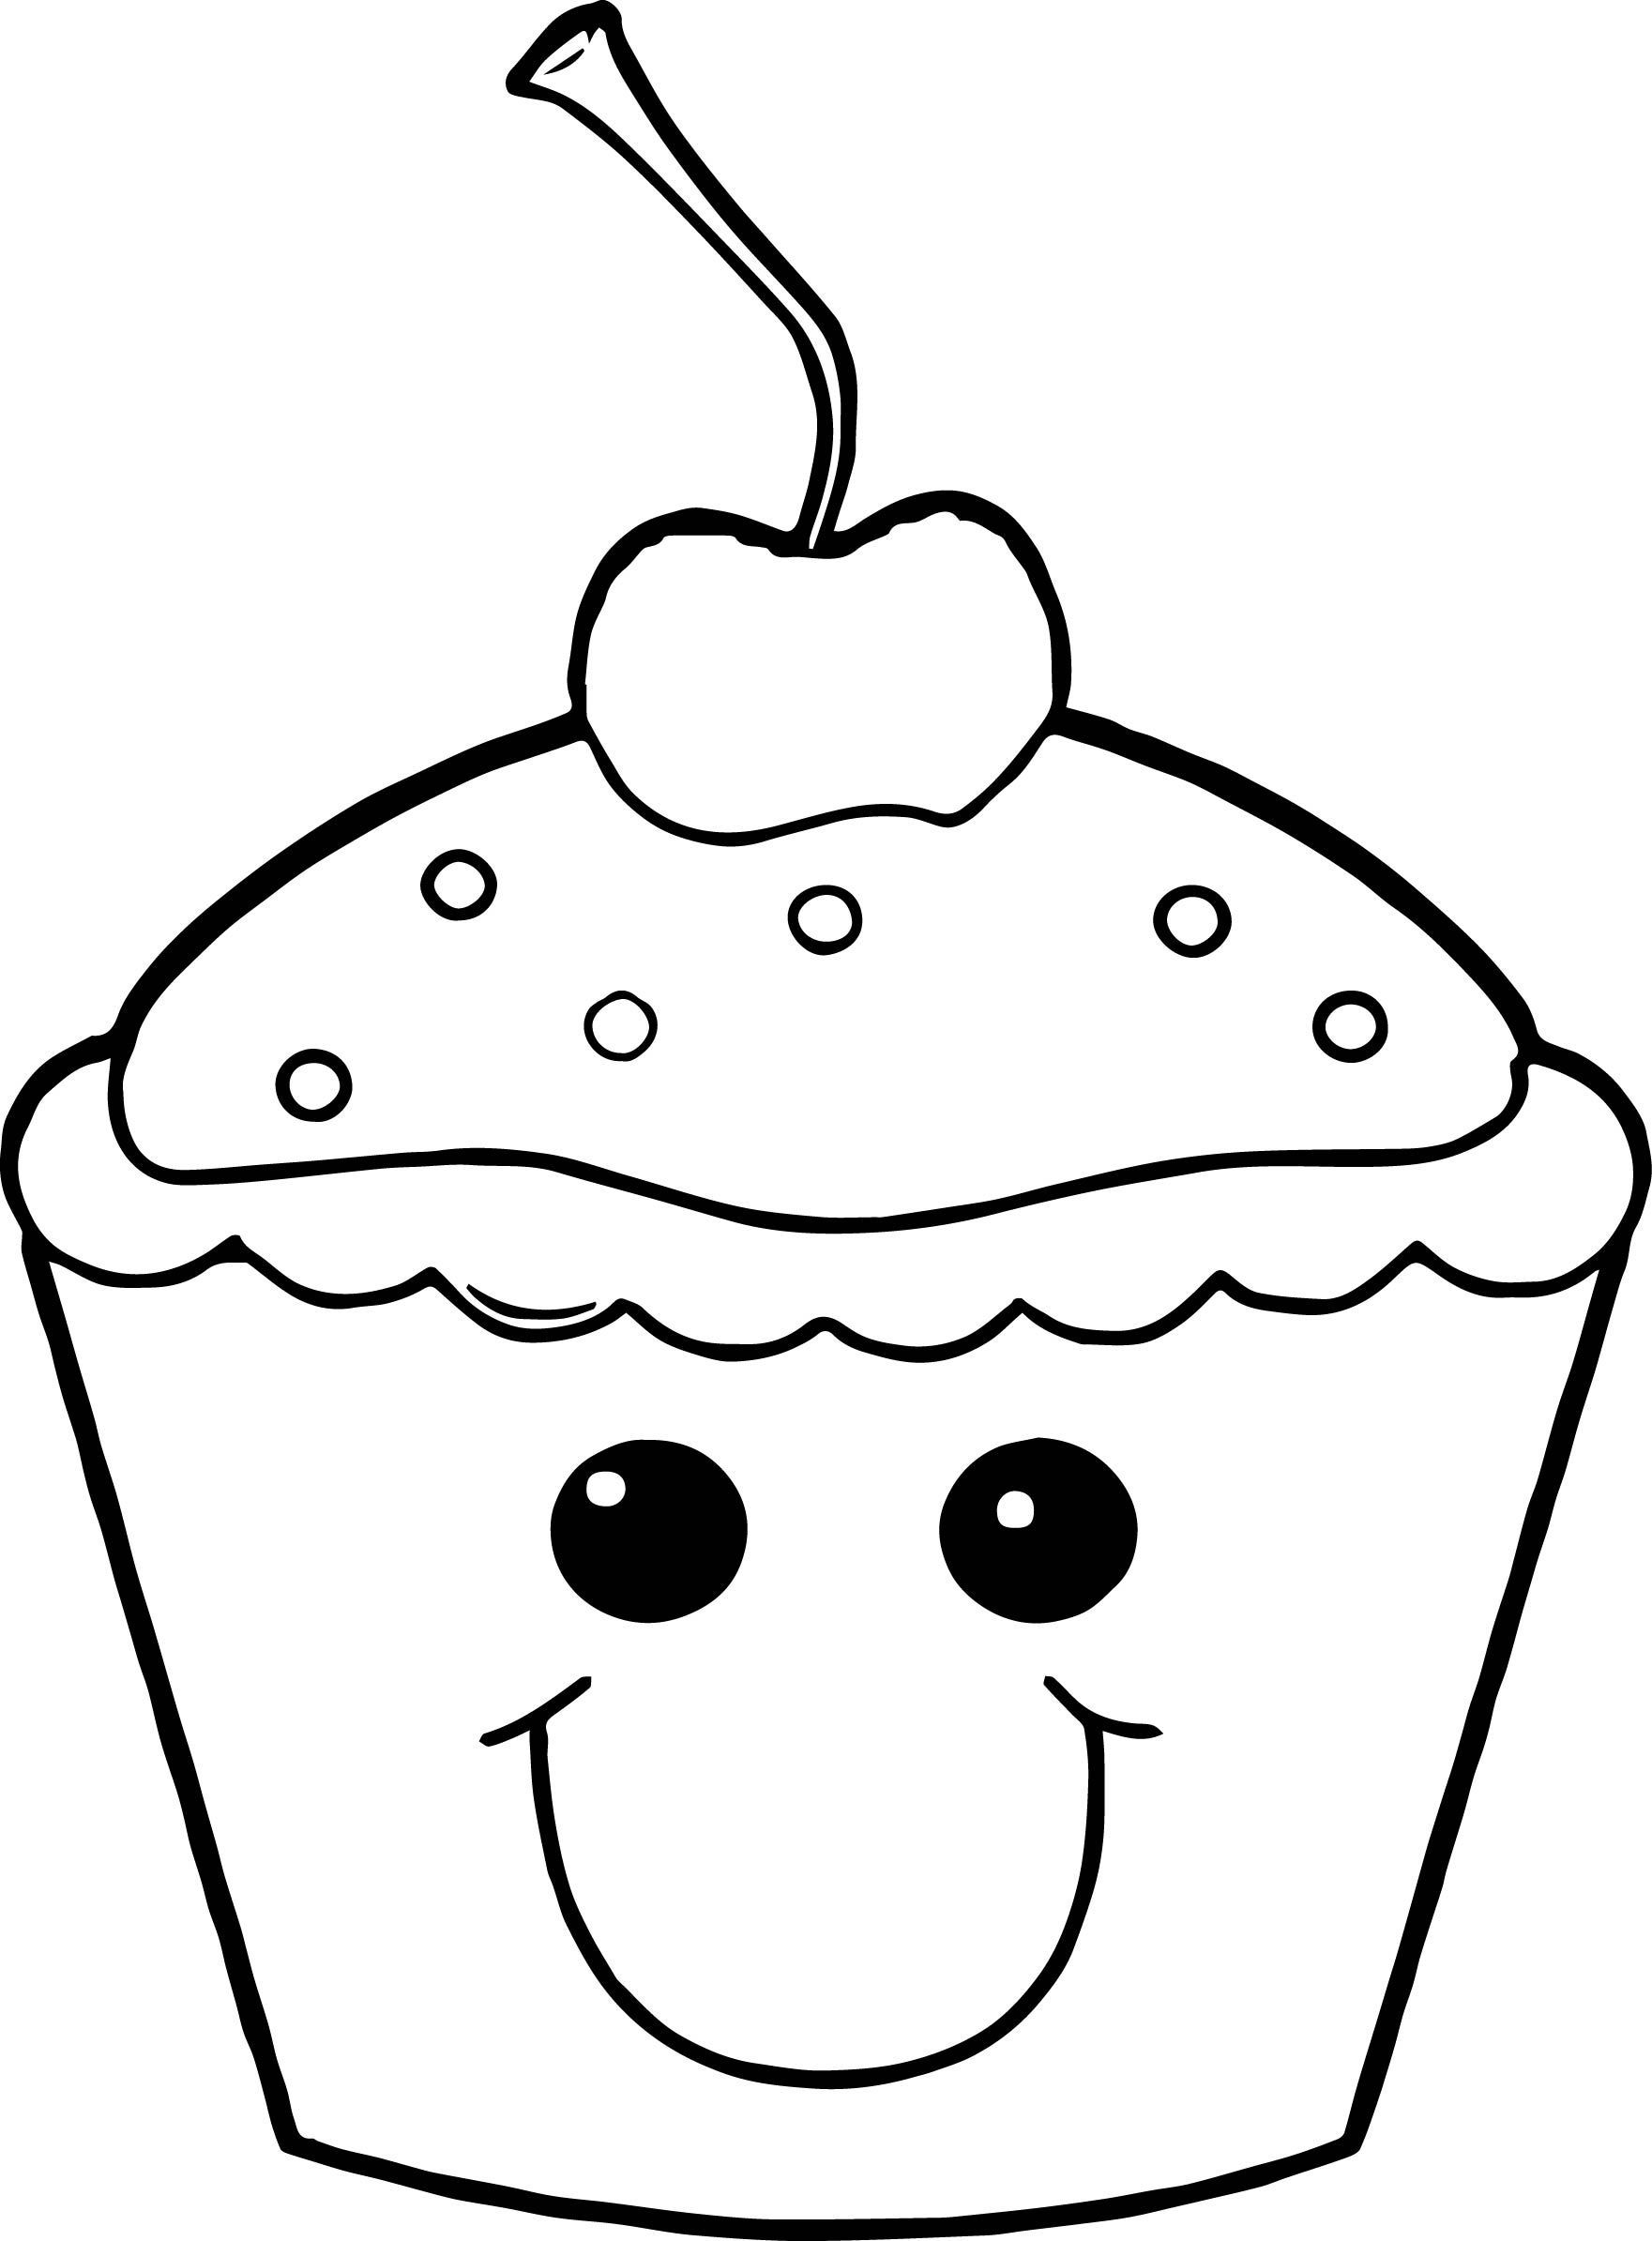 1761x2389 Cupcake Coloring Pages To Print